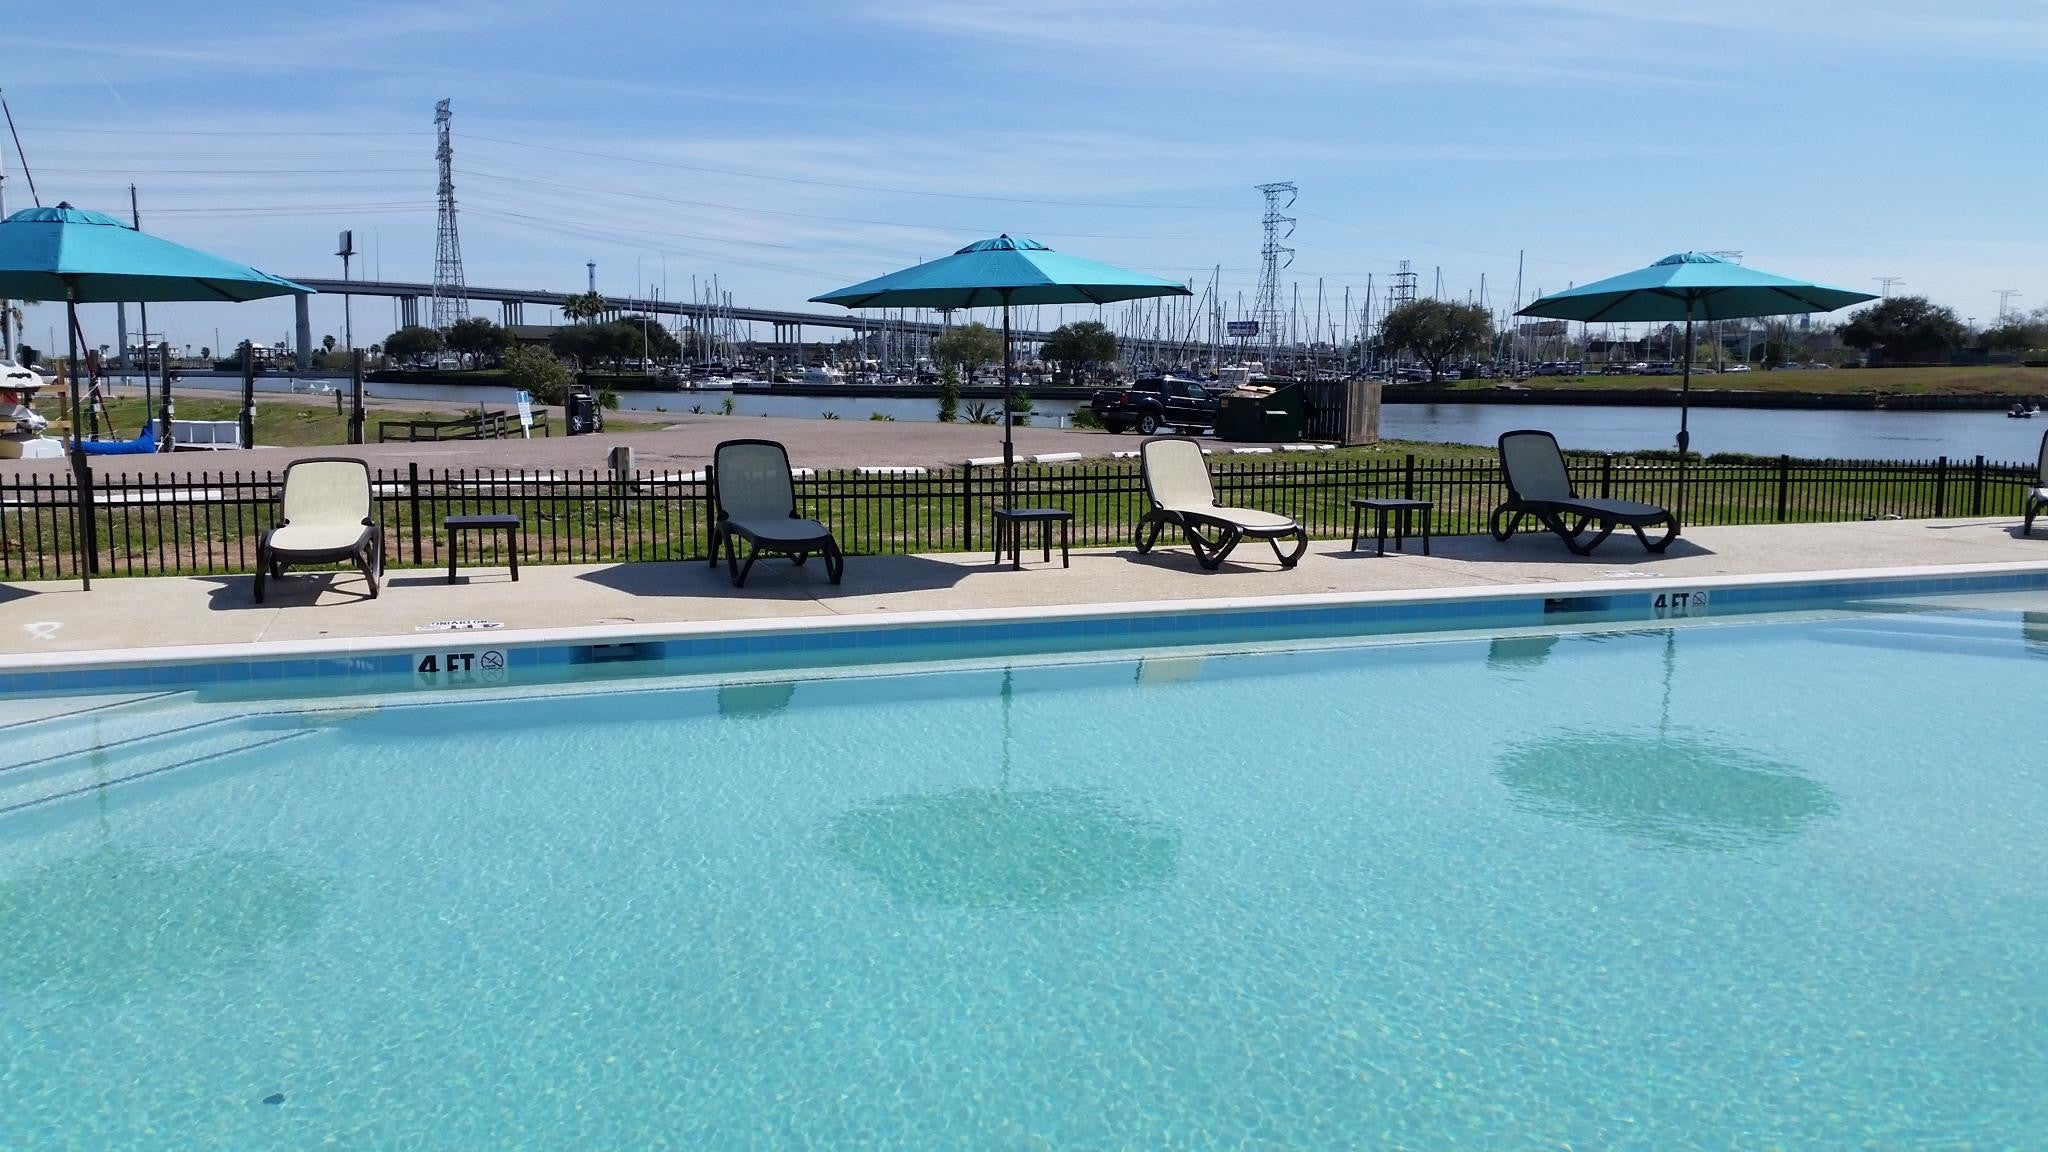 seabrook marina in texas adds a new pool